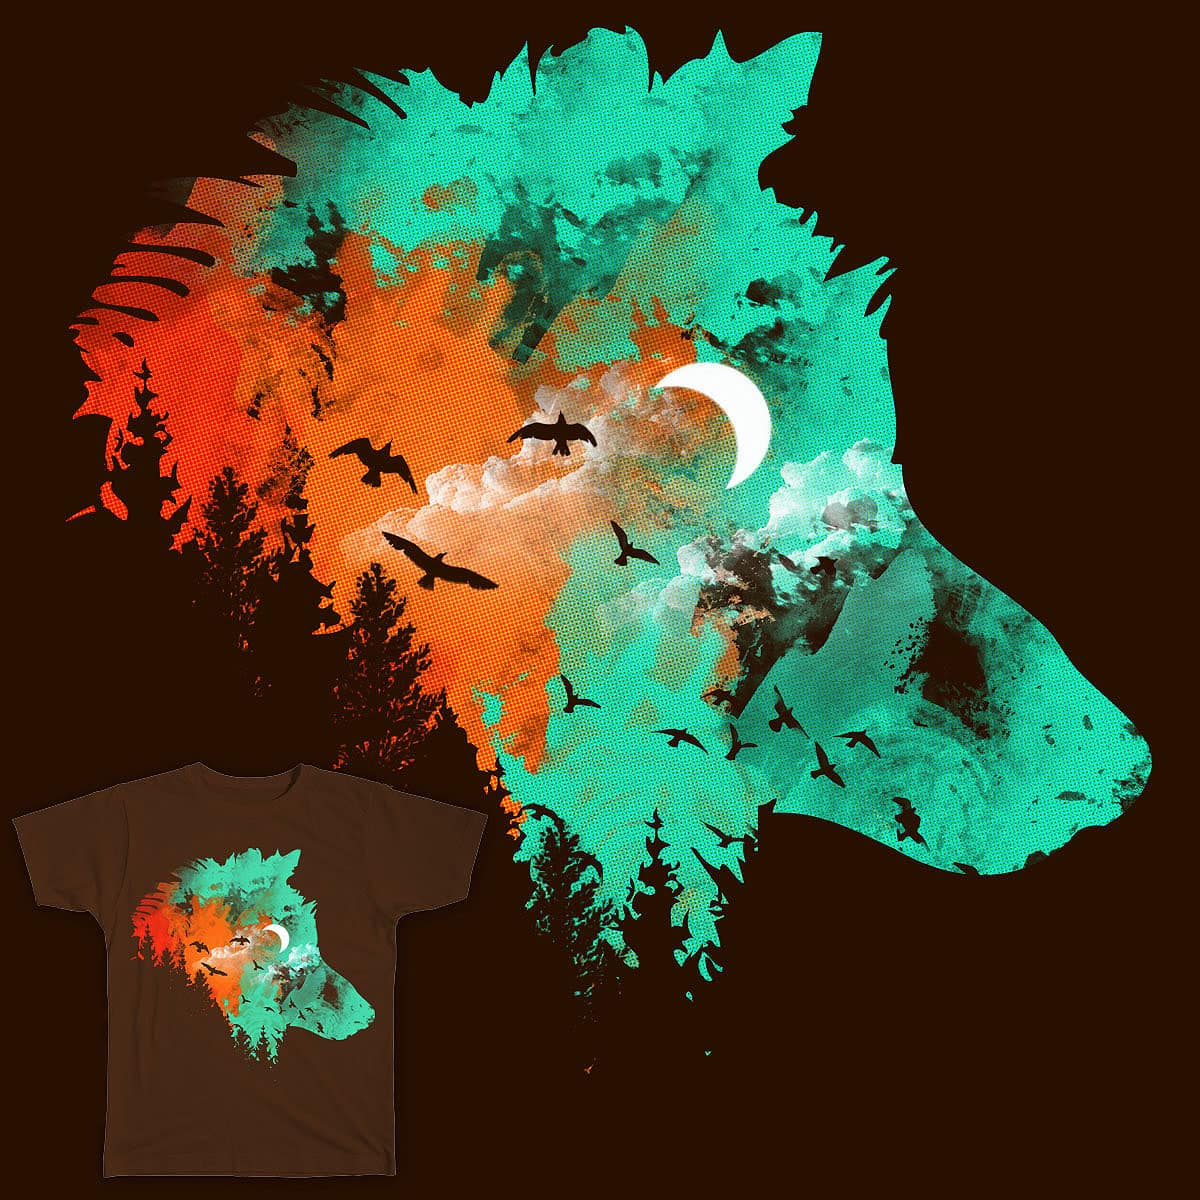 Midnight Wolf by Agimat ni Ingkong on Threadless